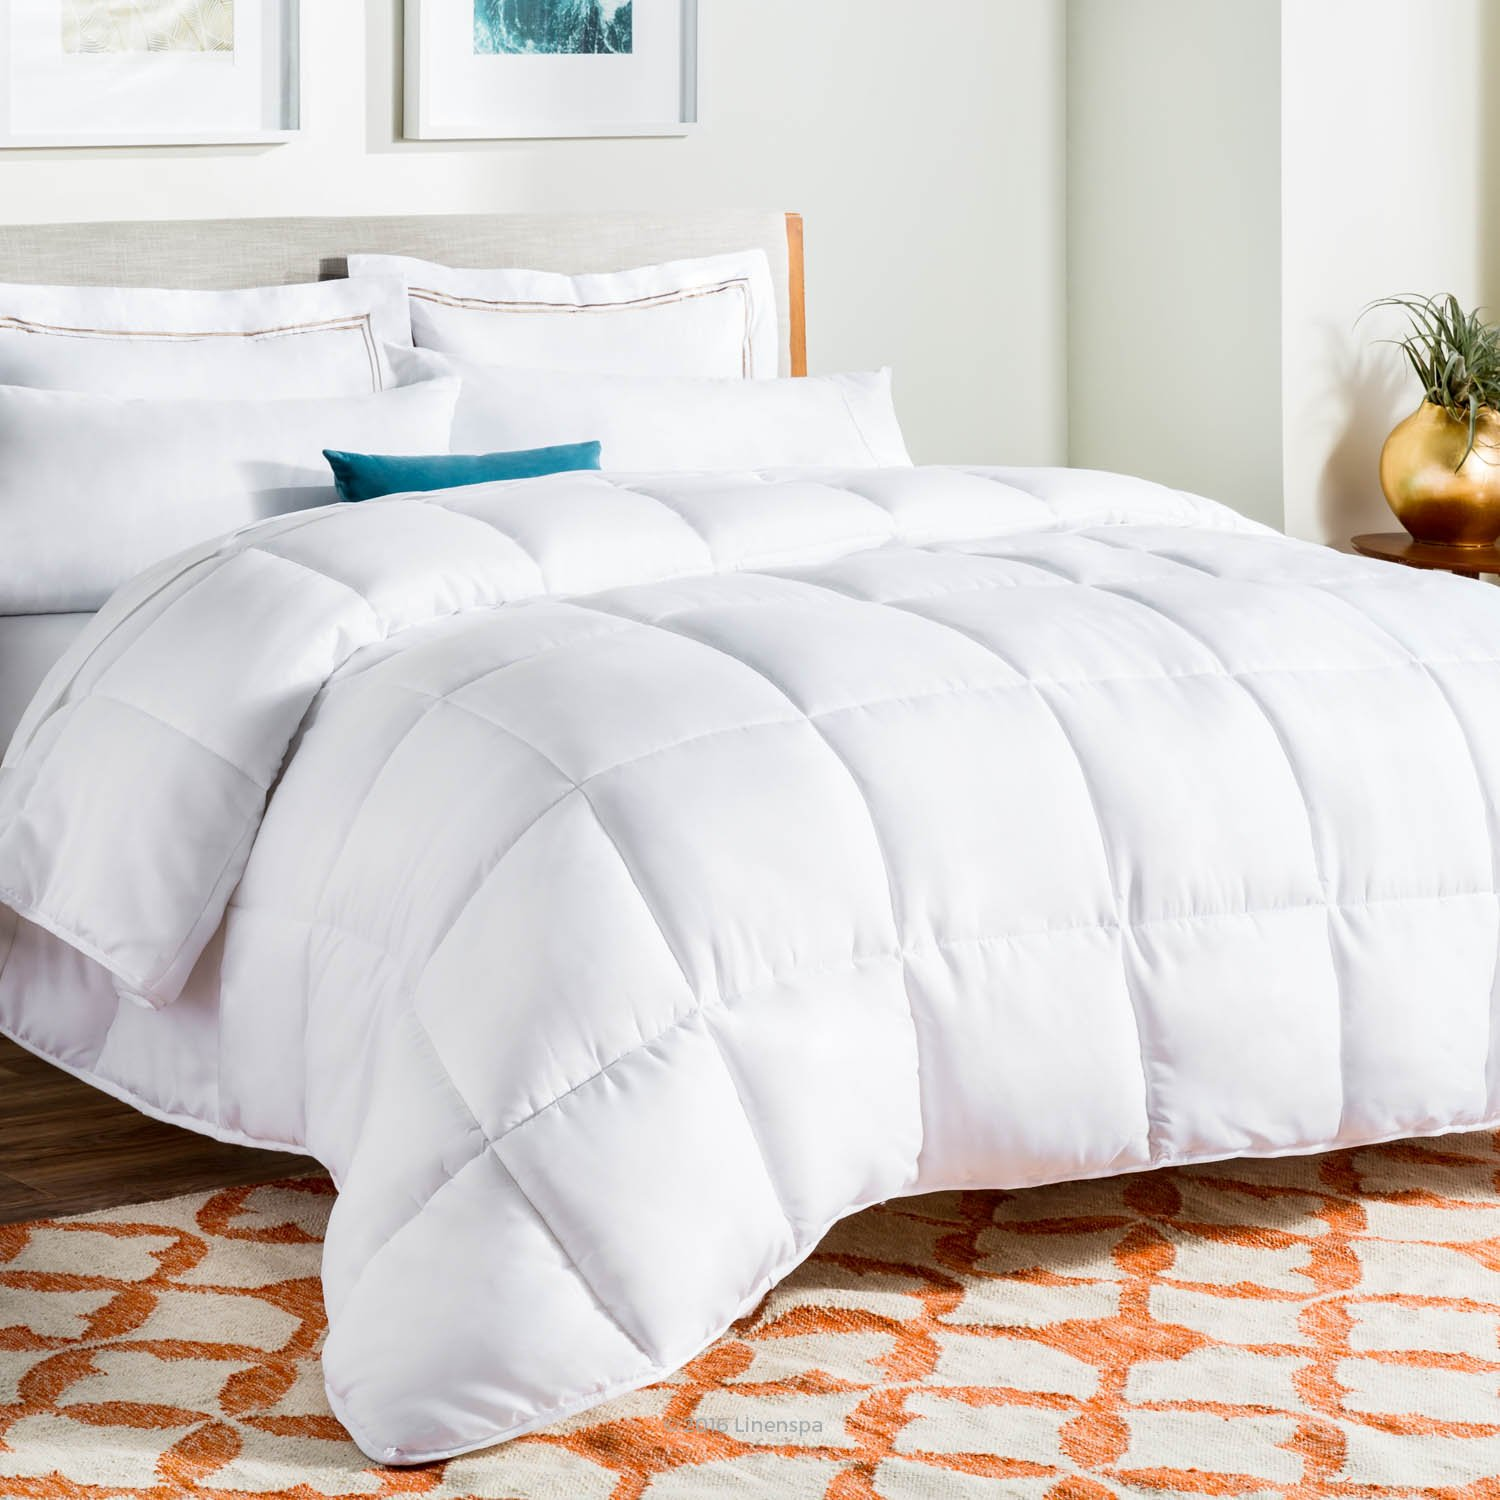 Top 10 Best Down Comforters